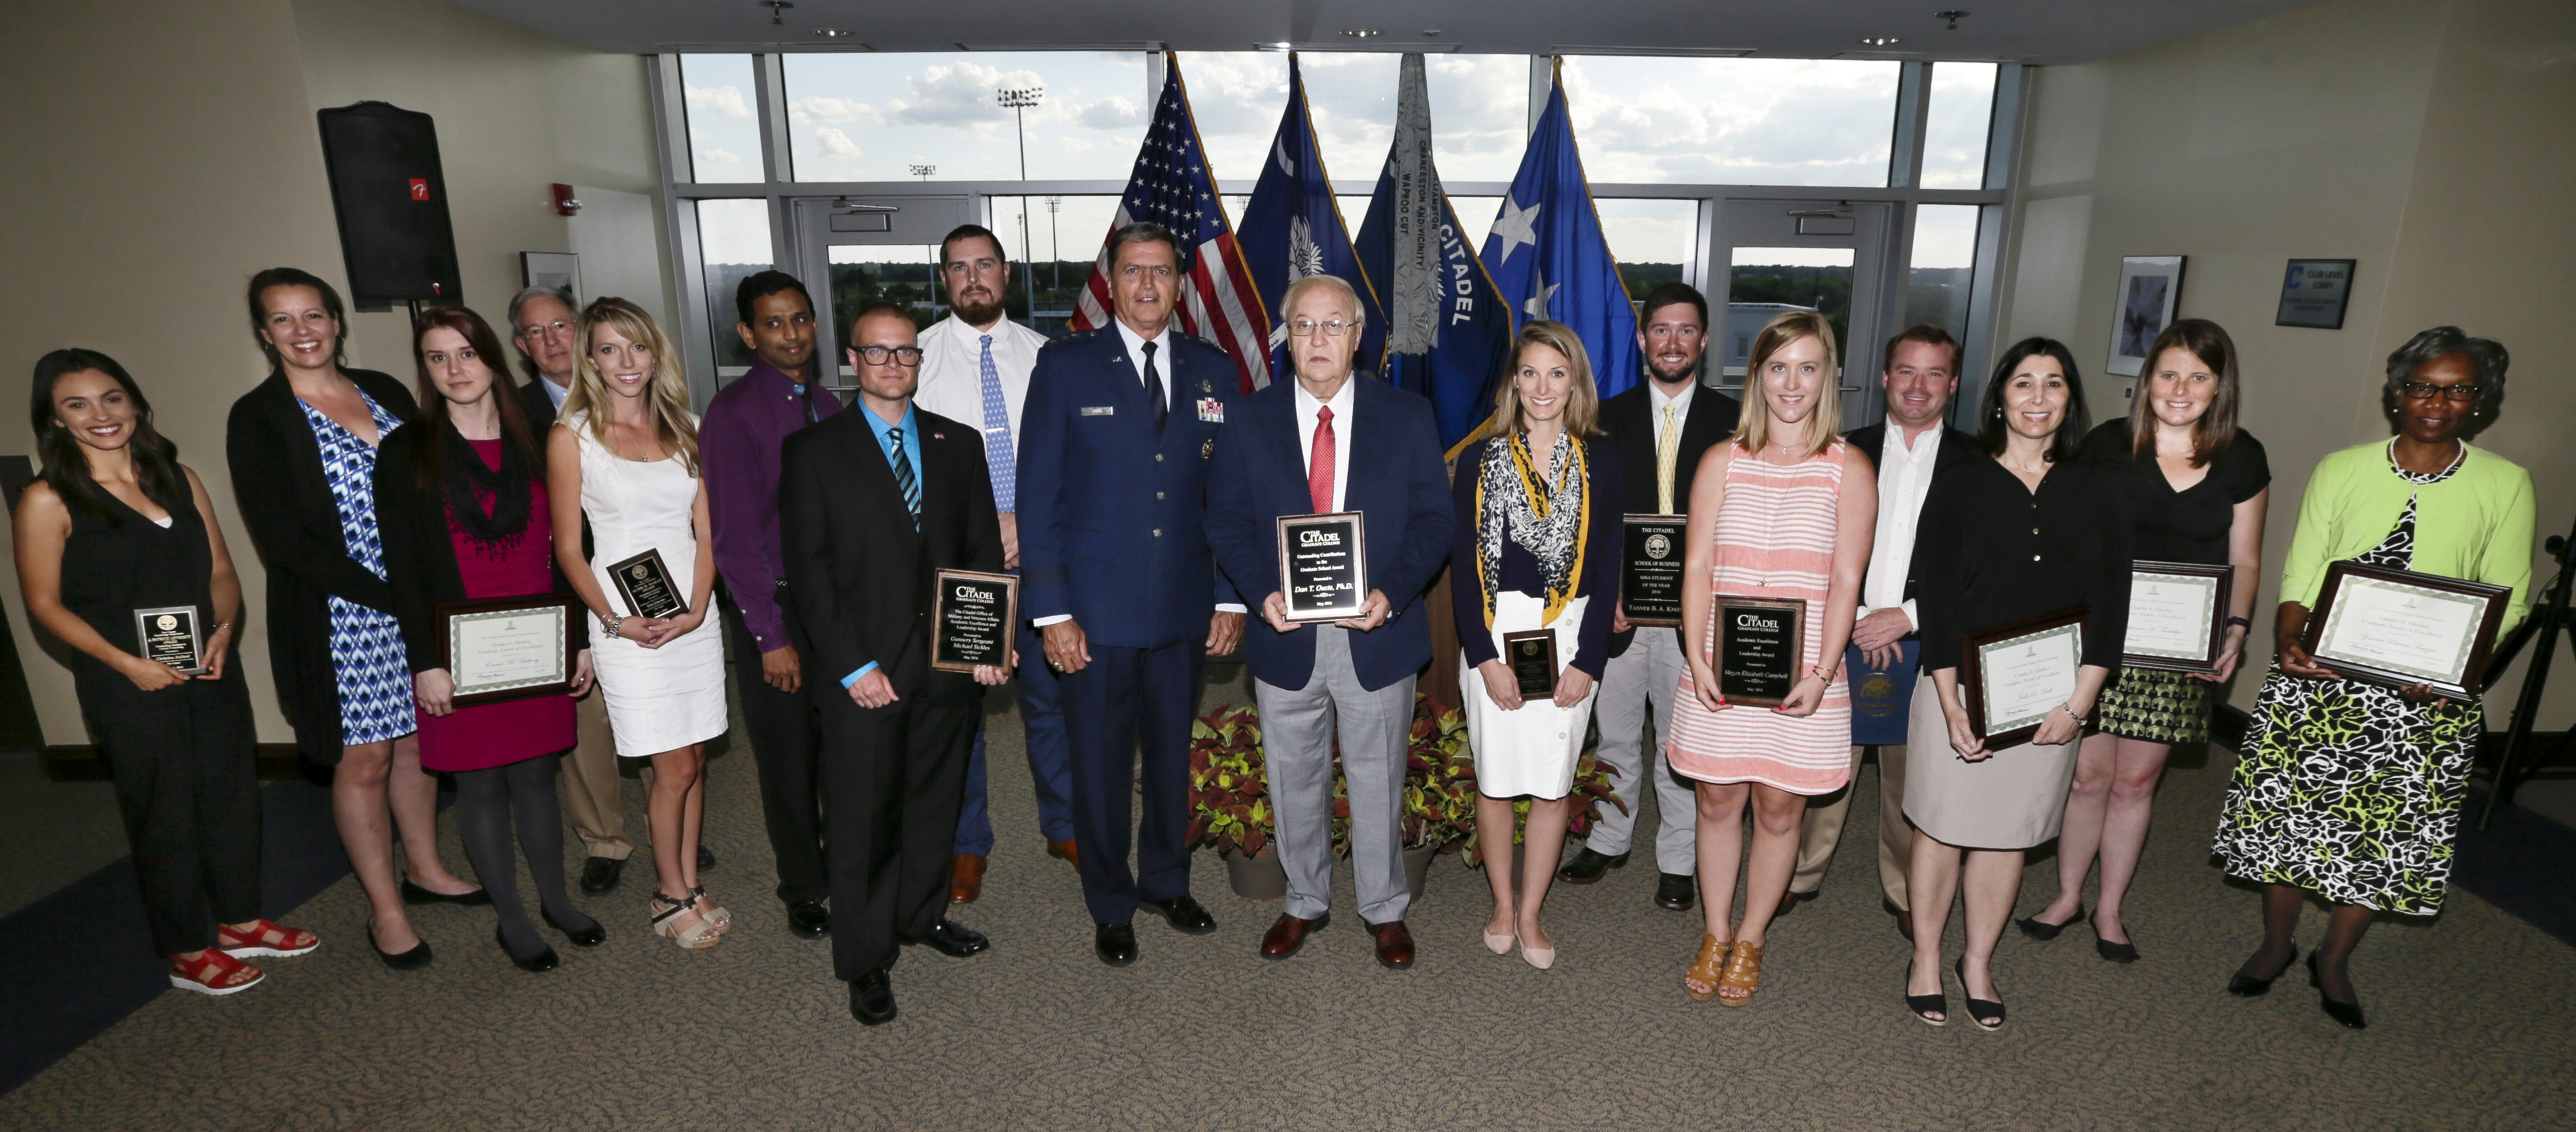 Citadel Graduate College 2016 awards